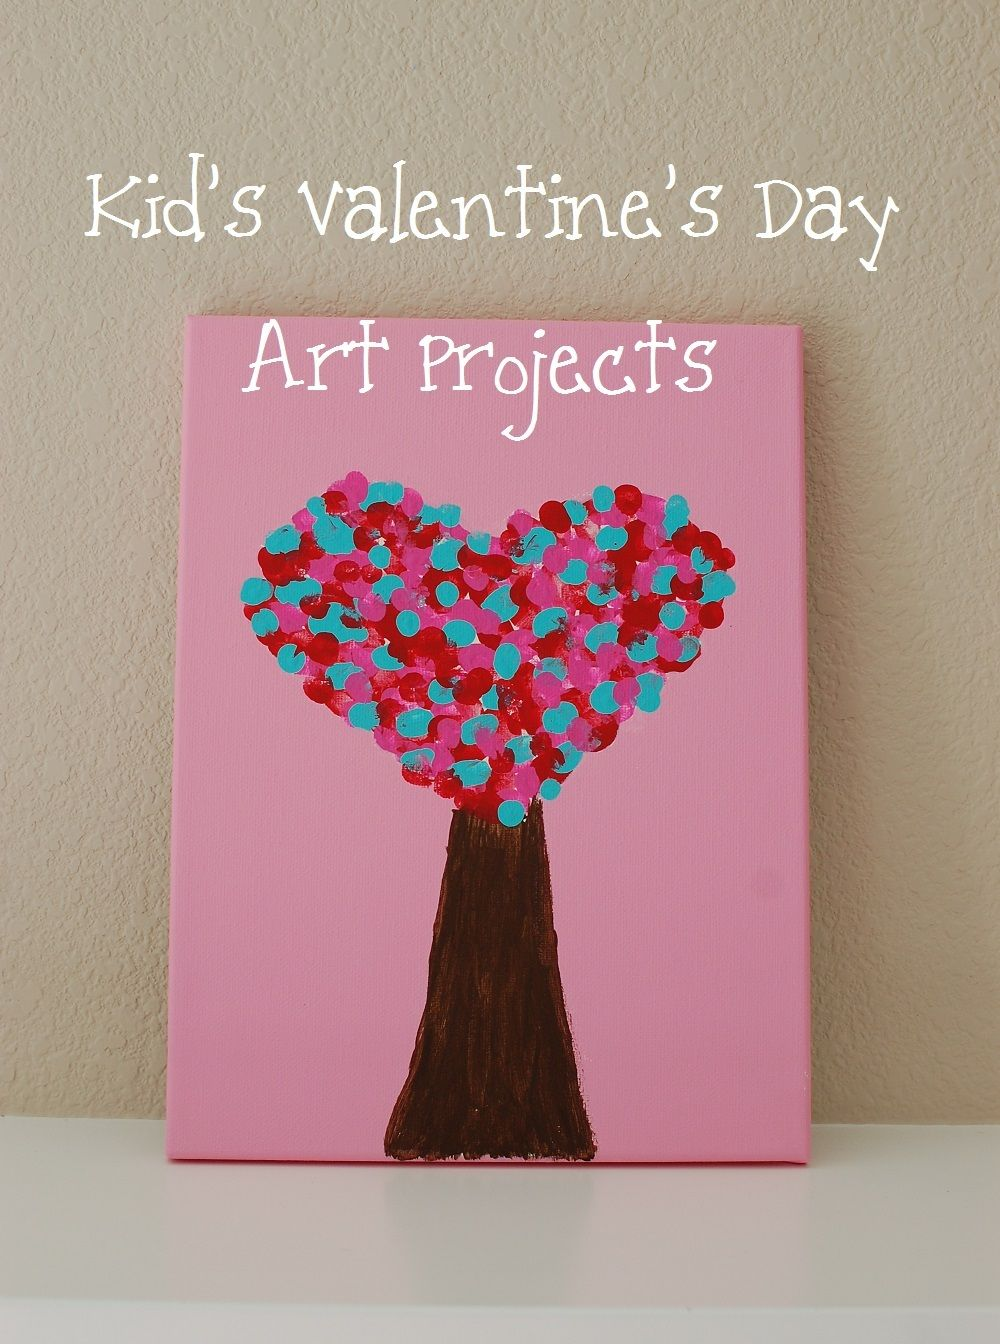 Kid S Valentine S Day Art Projects I Think I Can Do This With